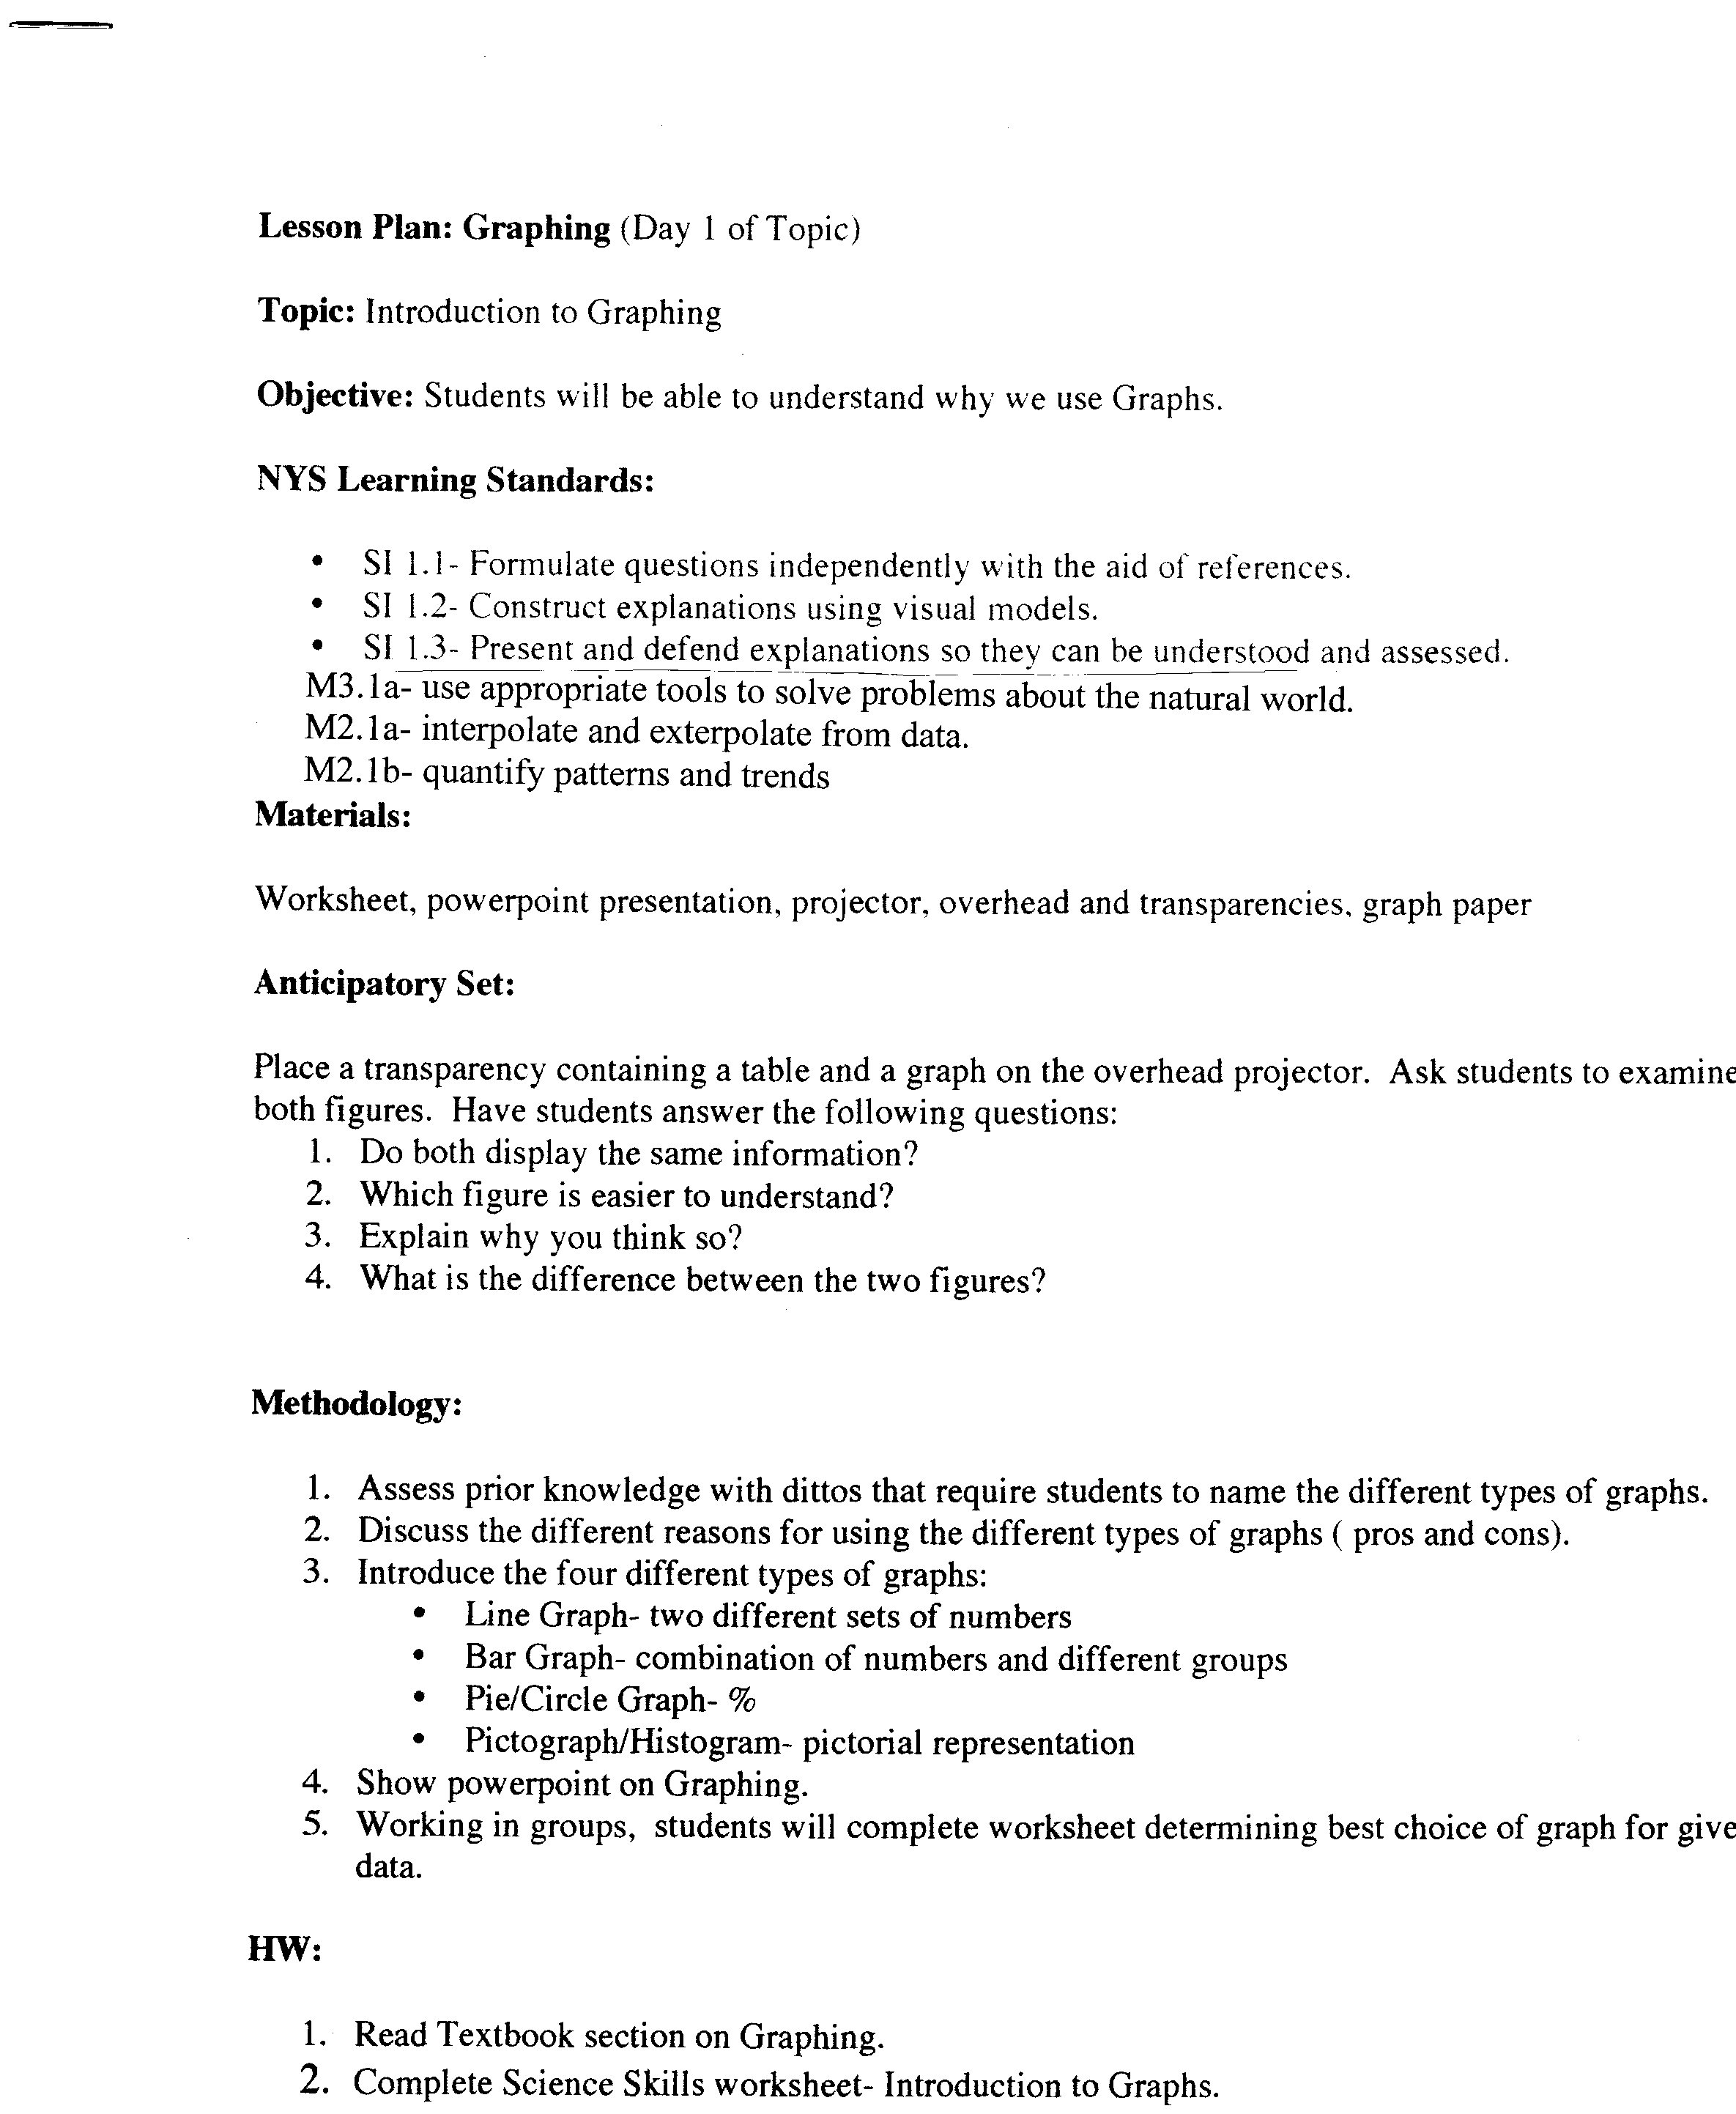 Science Skills – Microscope Lab Worksheet